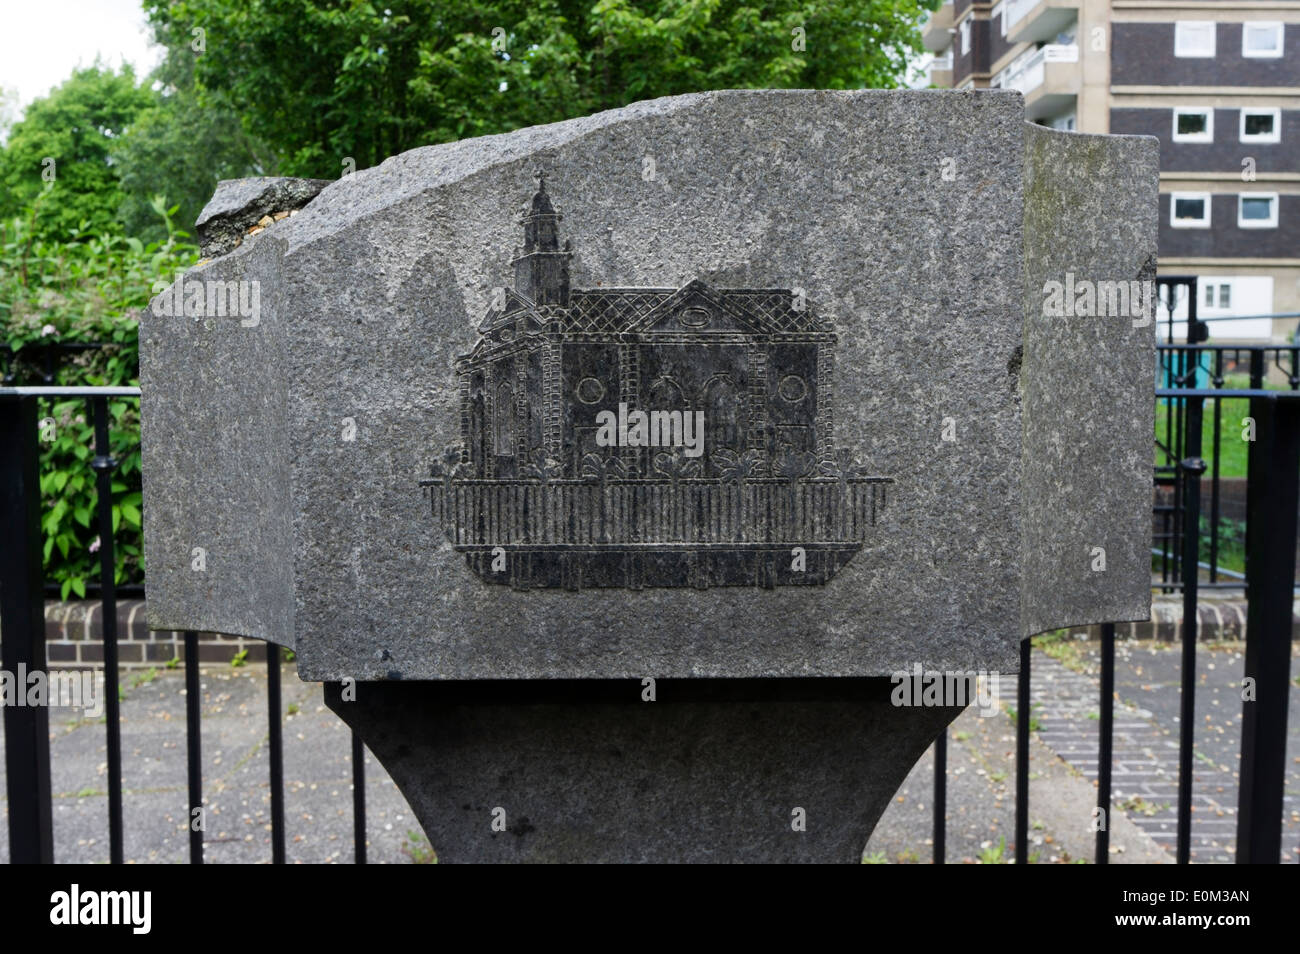 A stone in Swedenborg Gardens, Tower Hamlets, commemorates the first Swedish church in London. - Stock Image